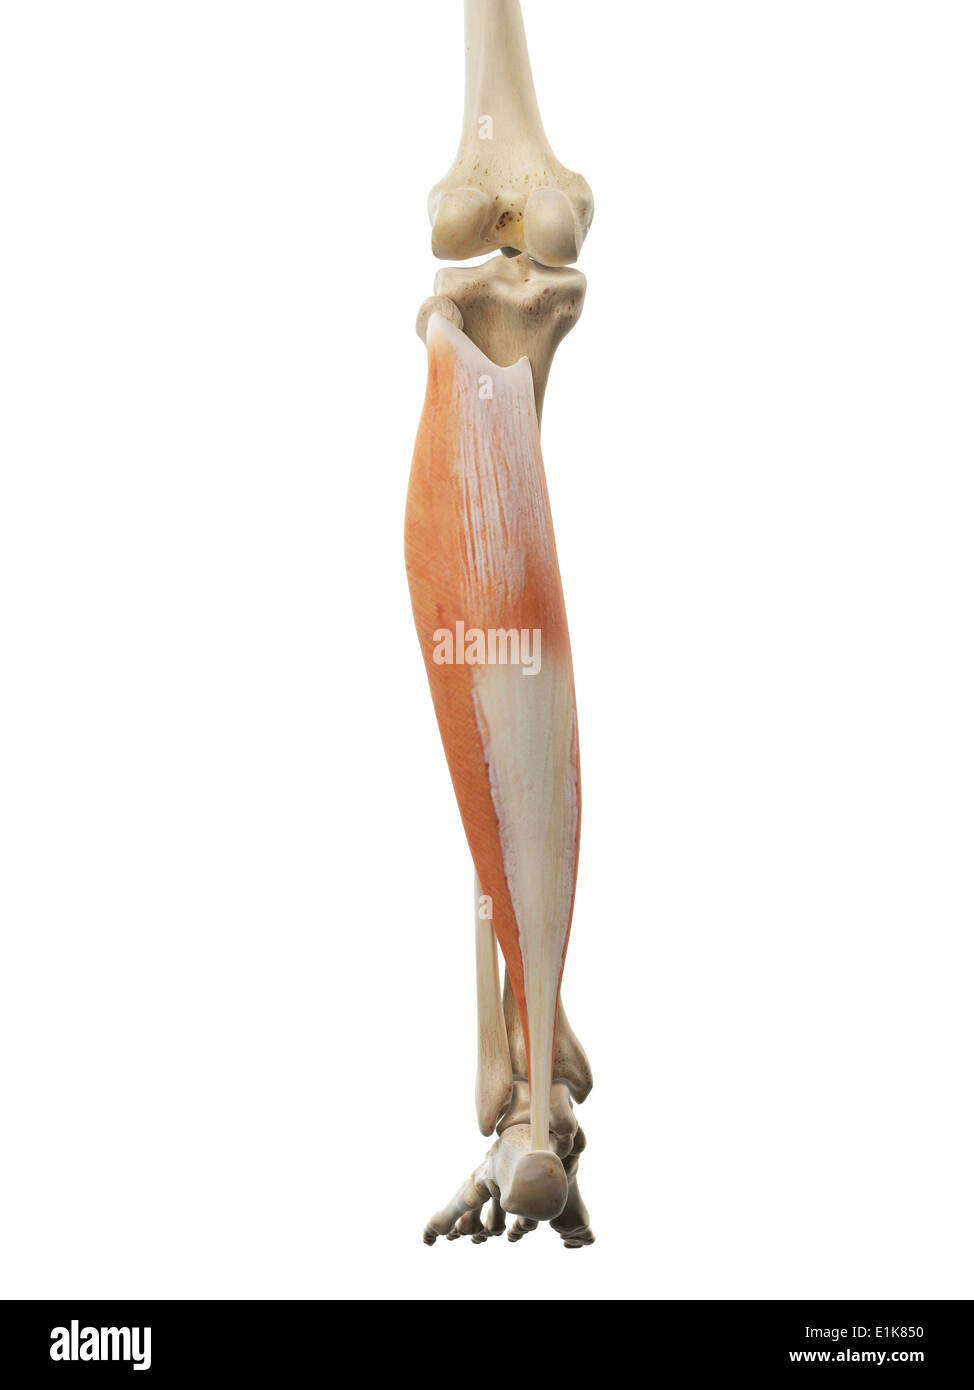 Human soleus muscle computer artwork Stock Photo: 69879628 - Alamy